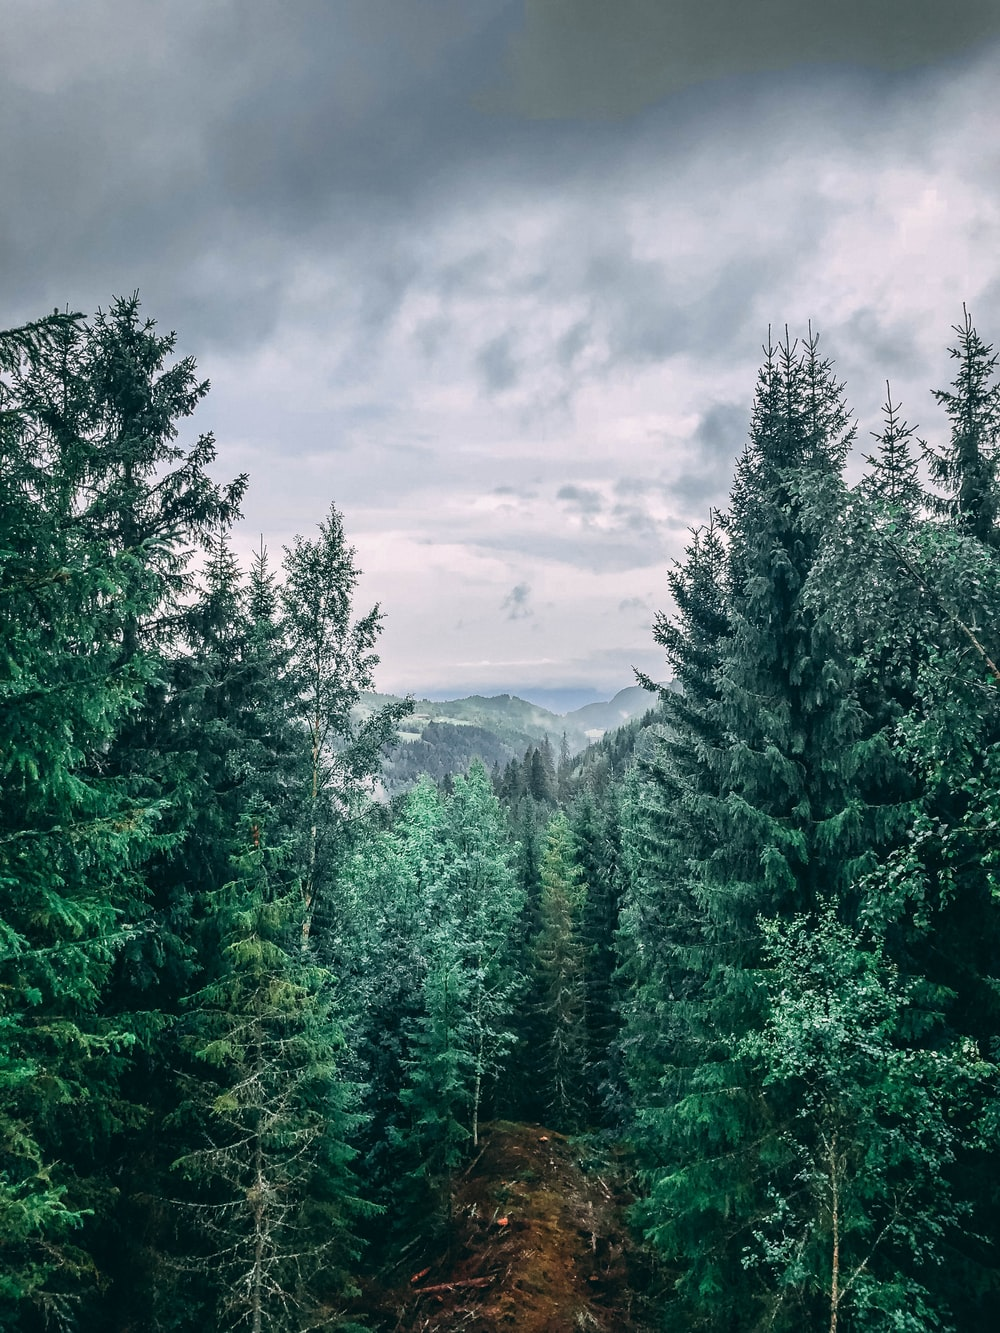 green trees under cloudy sky